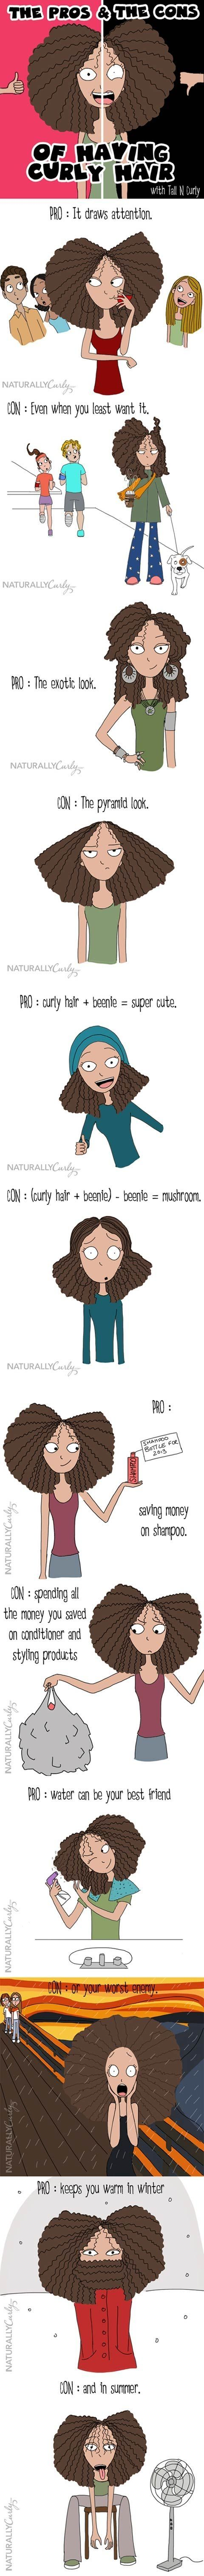 The pros and cons of curly hair. by sheree